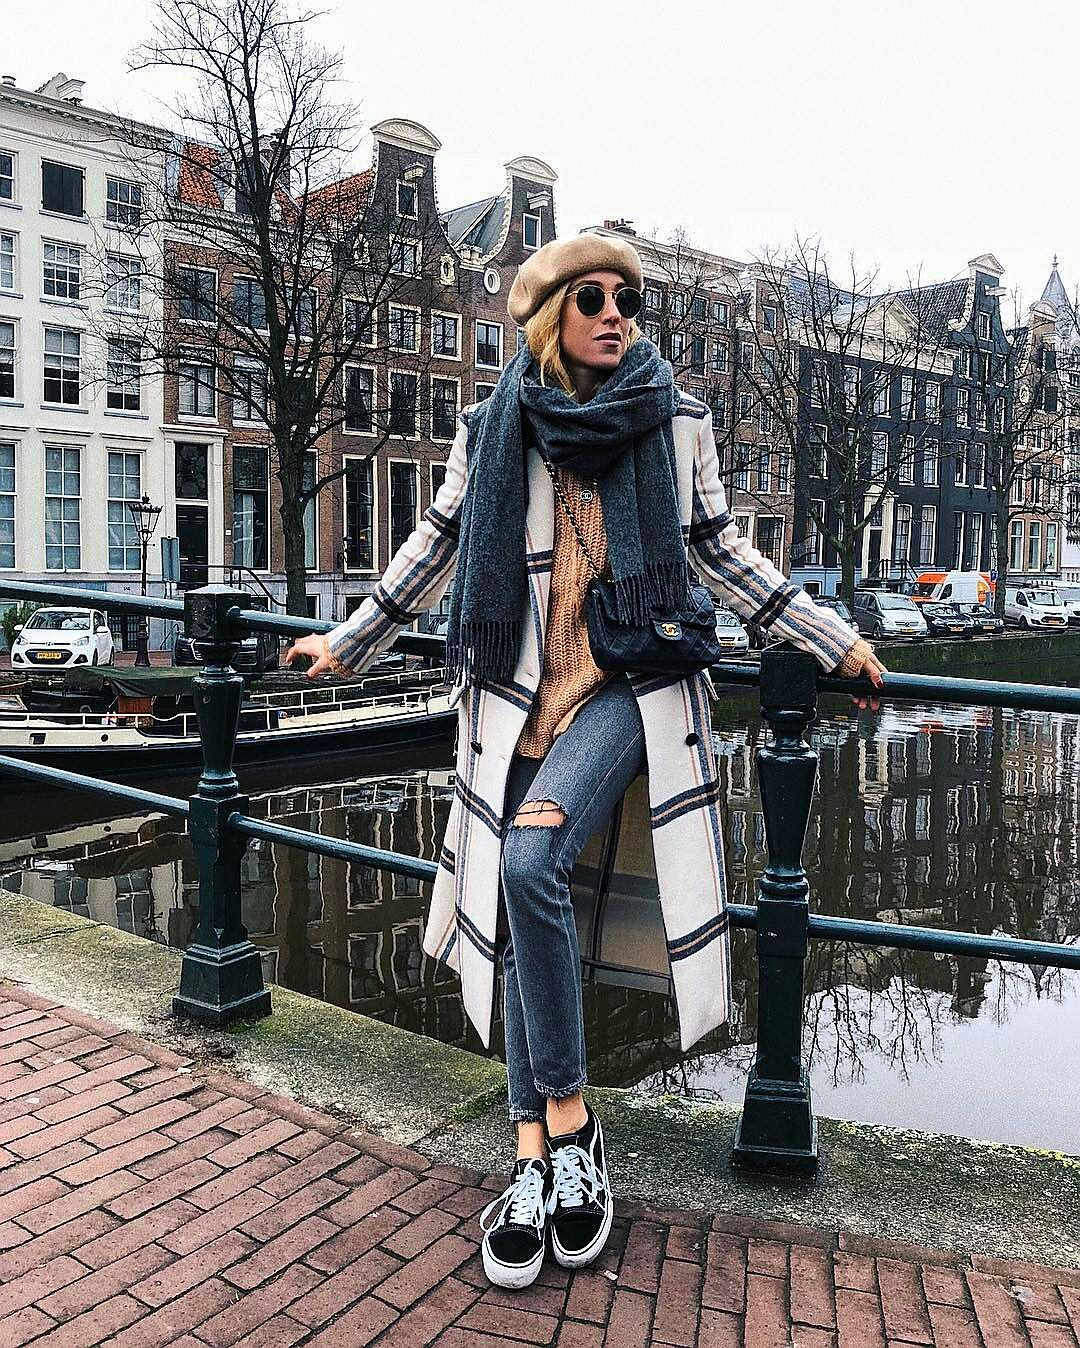 Pin by G.C 🔆 on ⭐Piece of Chic | Autumn street style